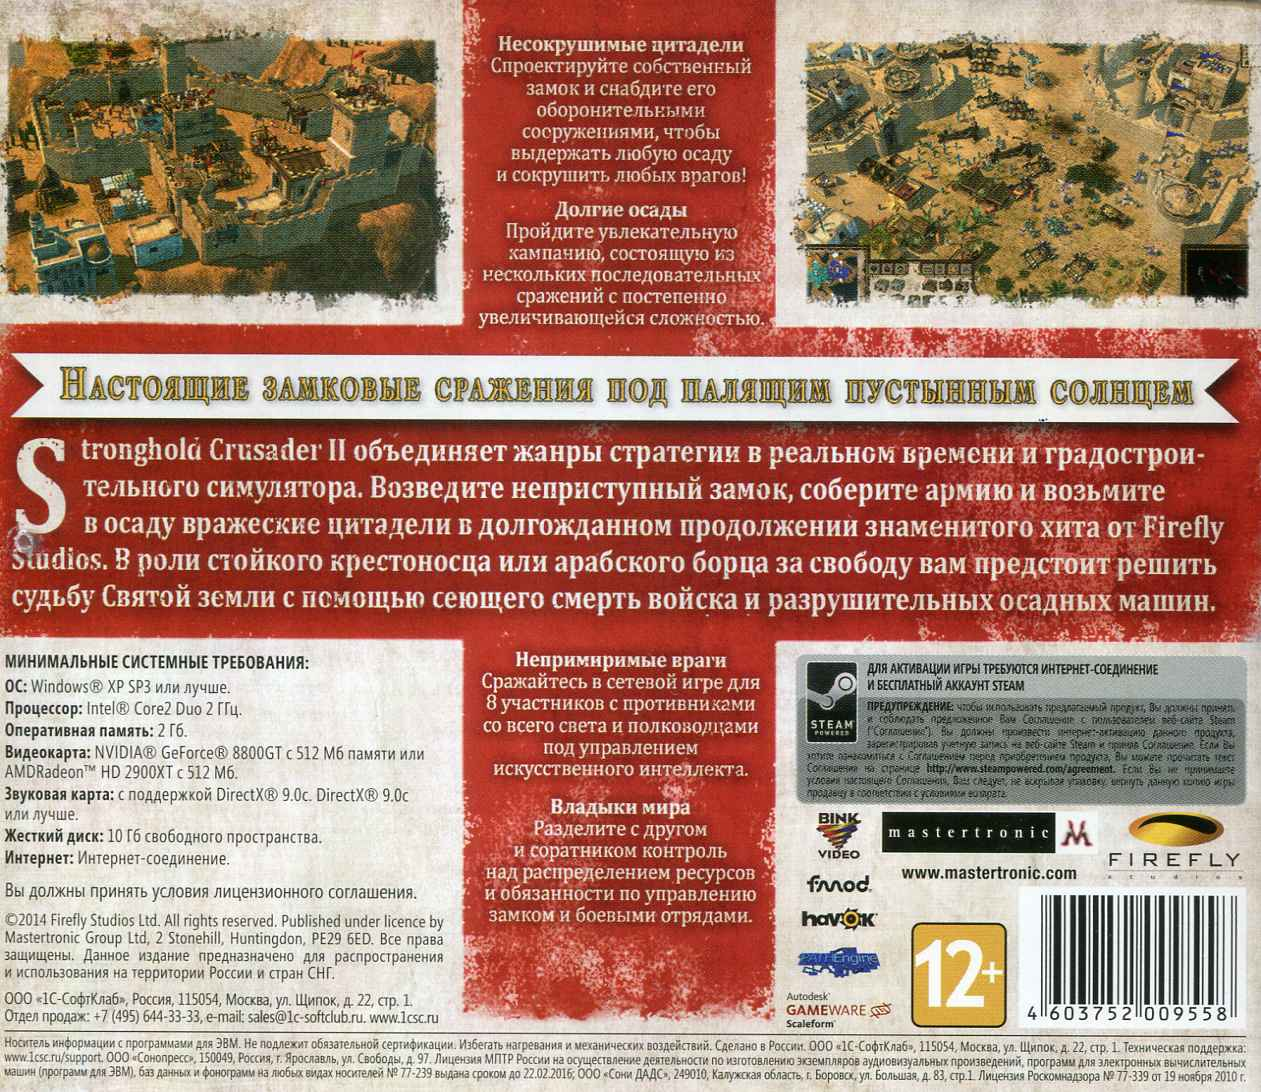 stronghold crusader 2 activation key